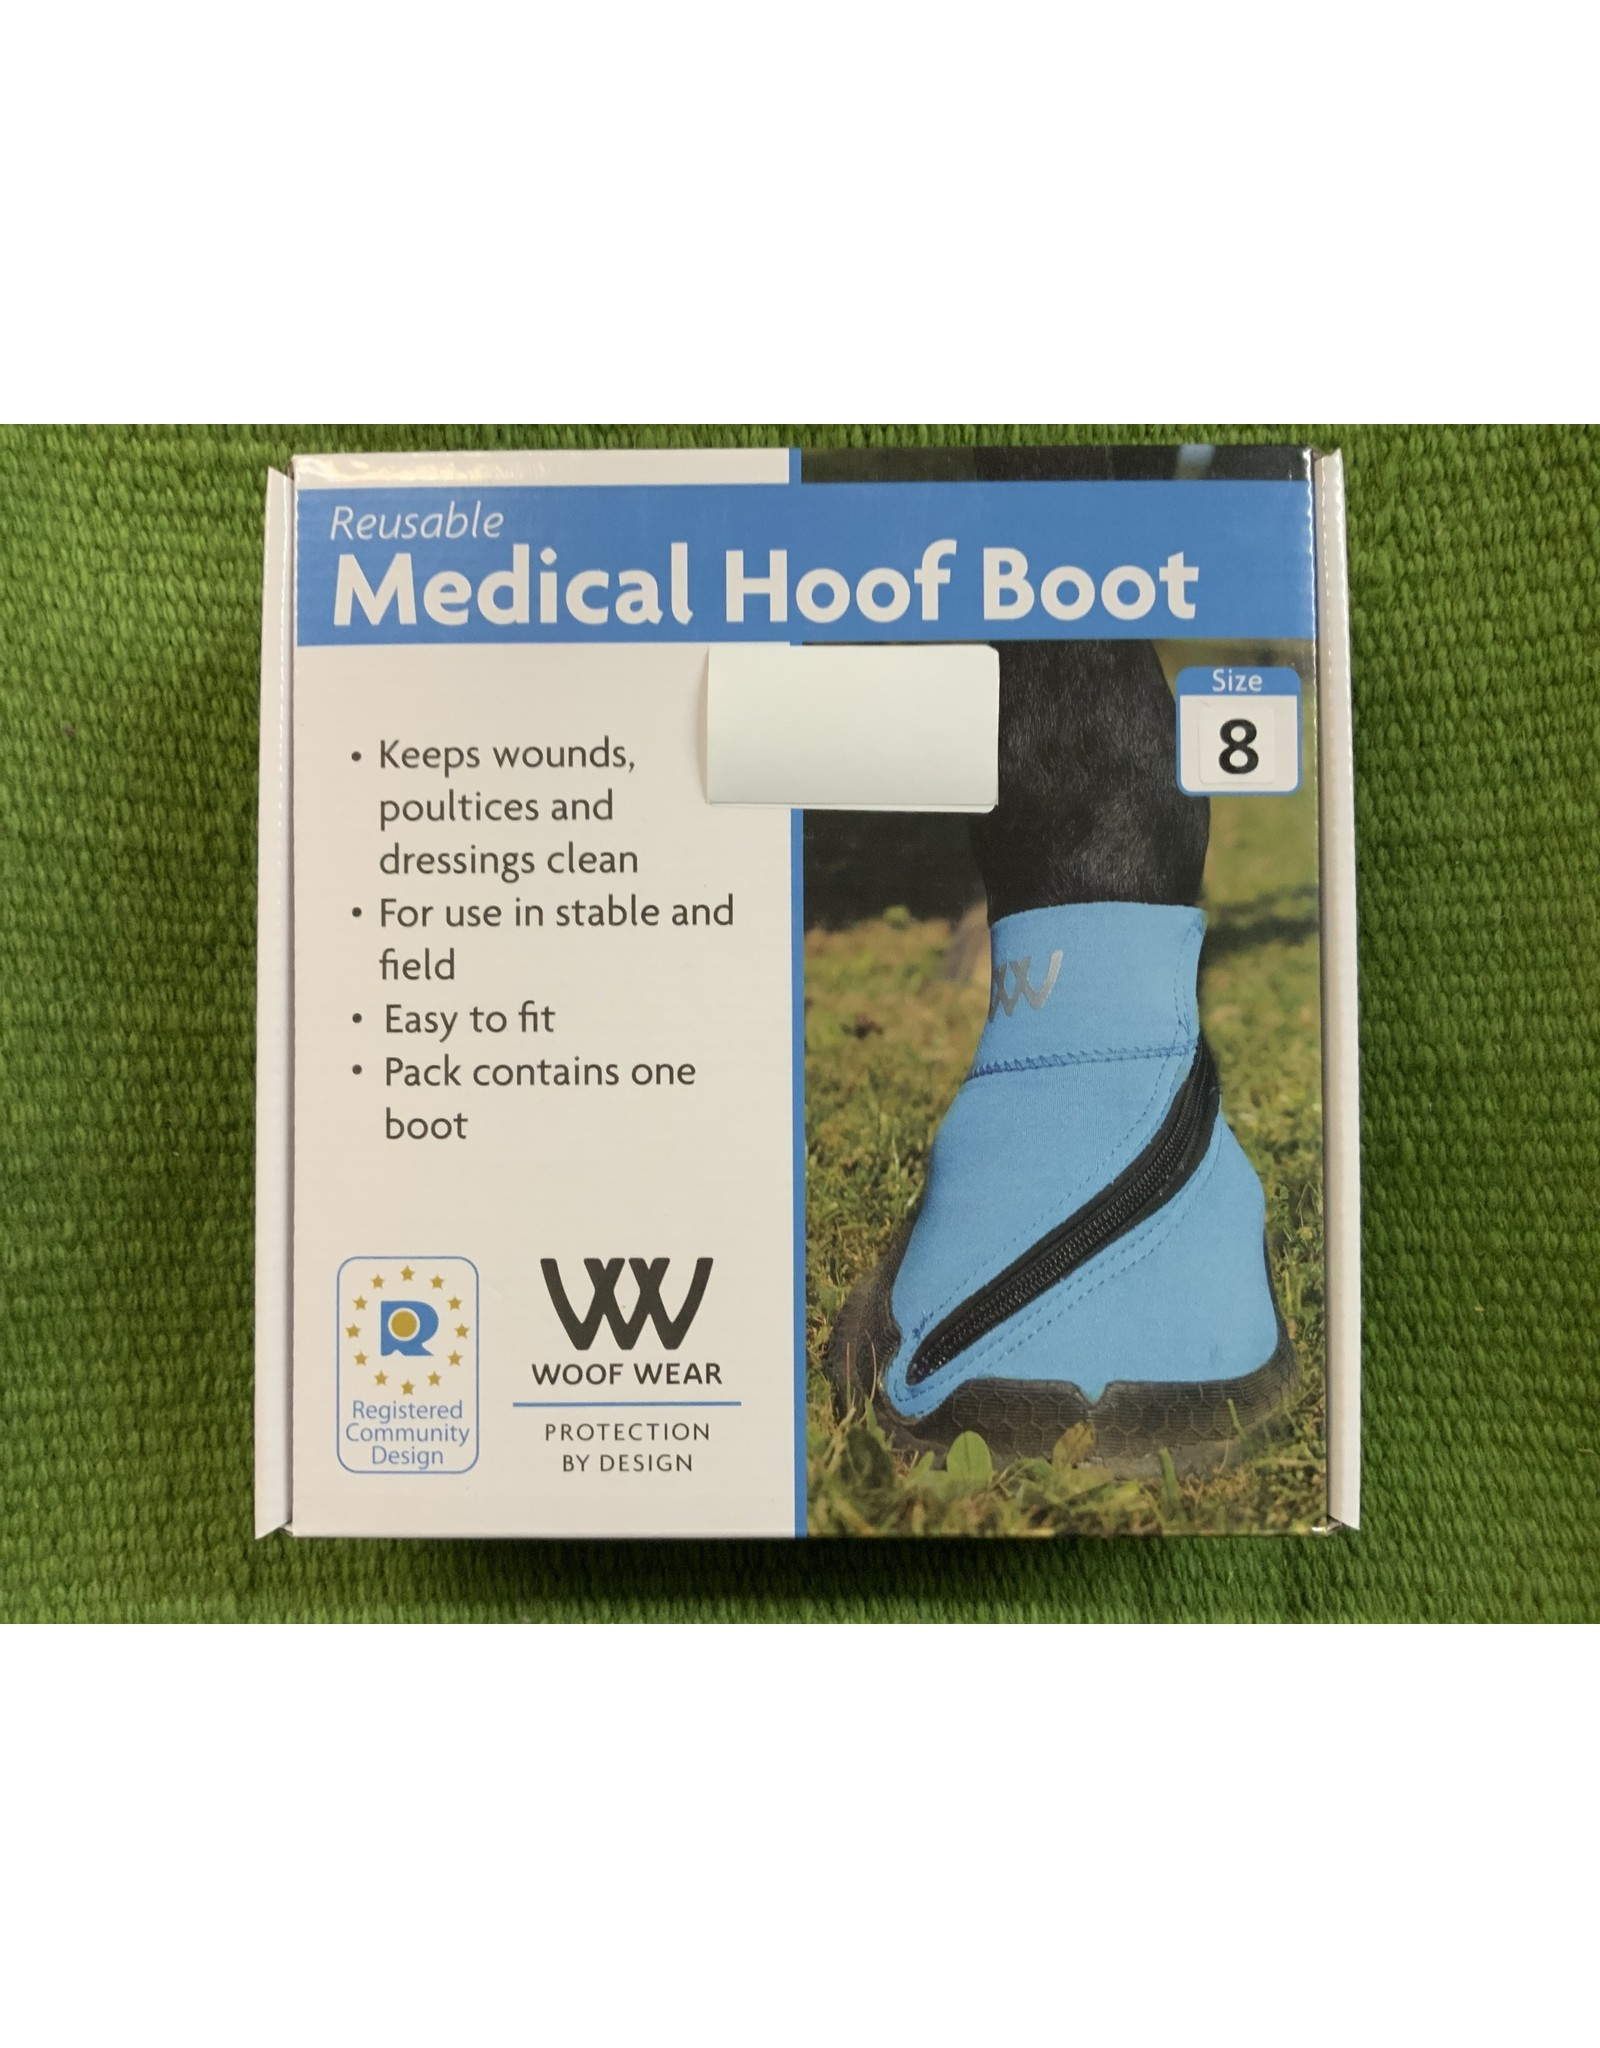 Reusable Medical Hoof Boot (Poultice Boot) - Blue - Size 8 - 717160-22/8 -Woof Wear